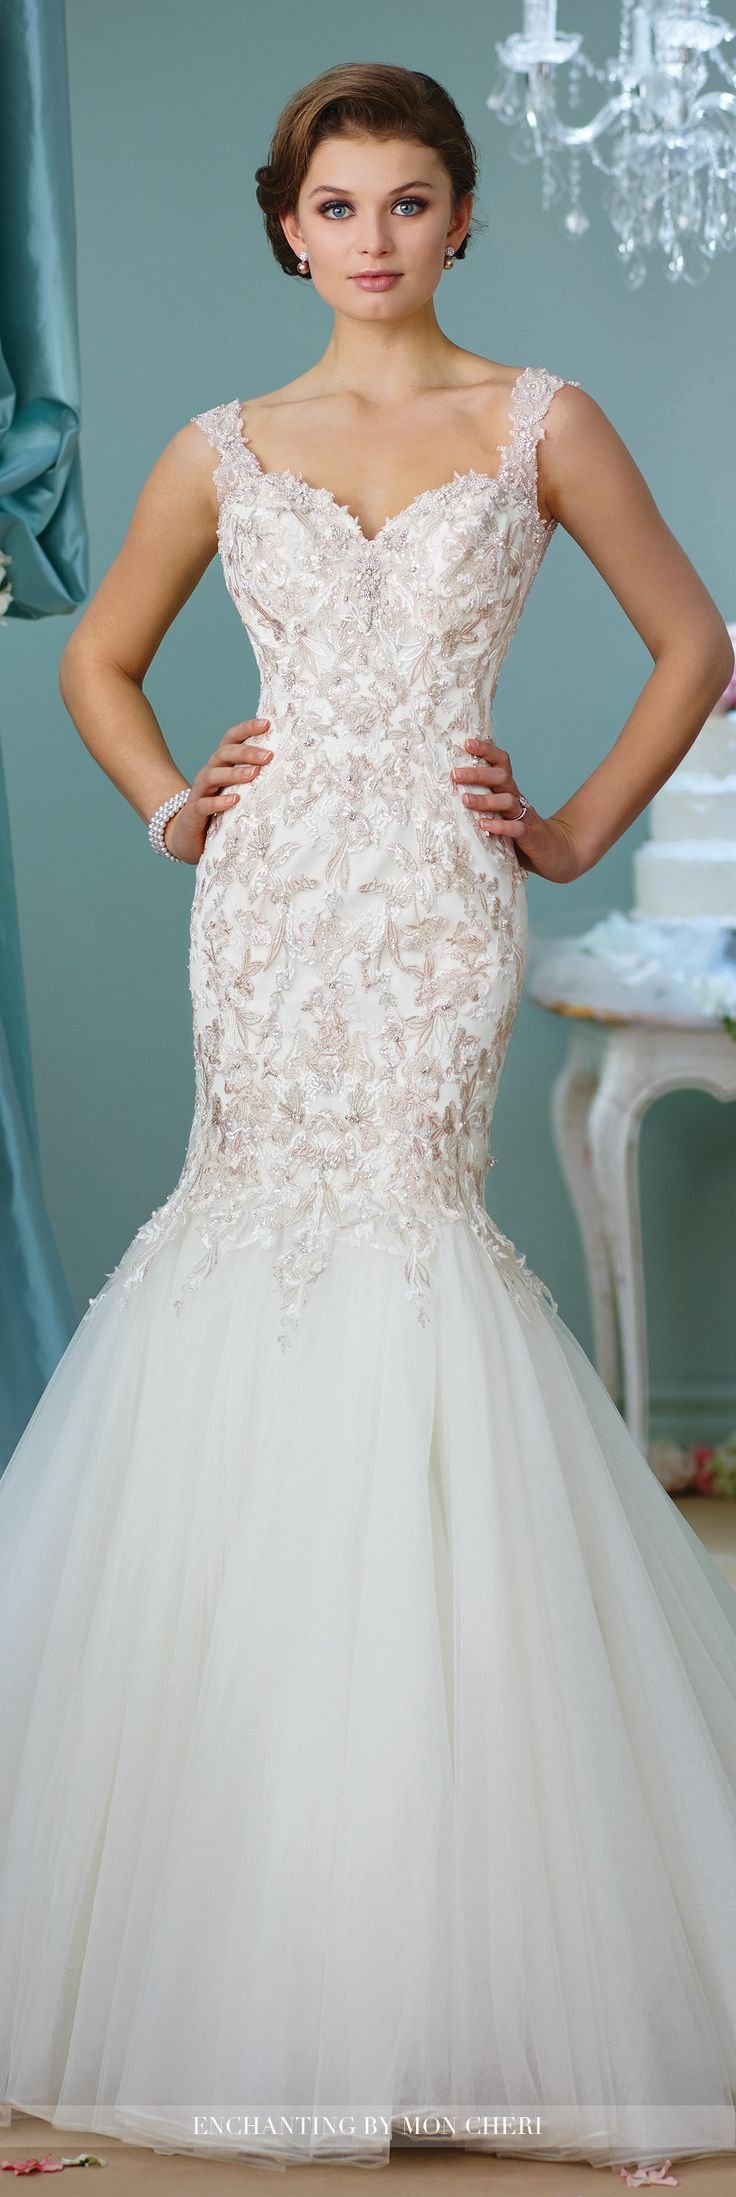 best wedding gowns images on pinterest